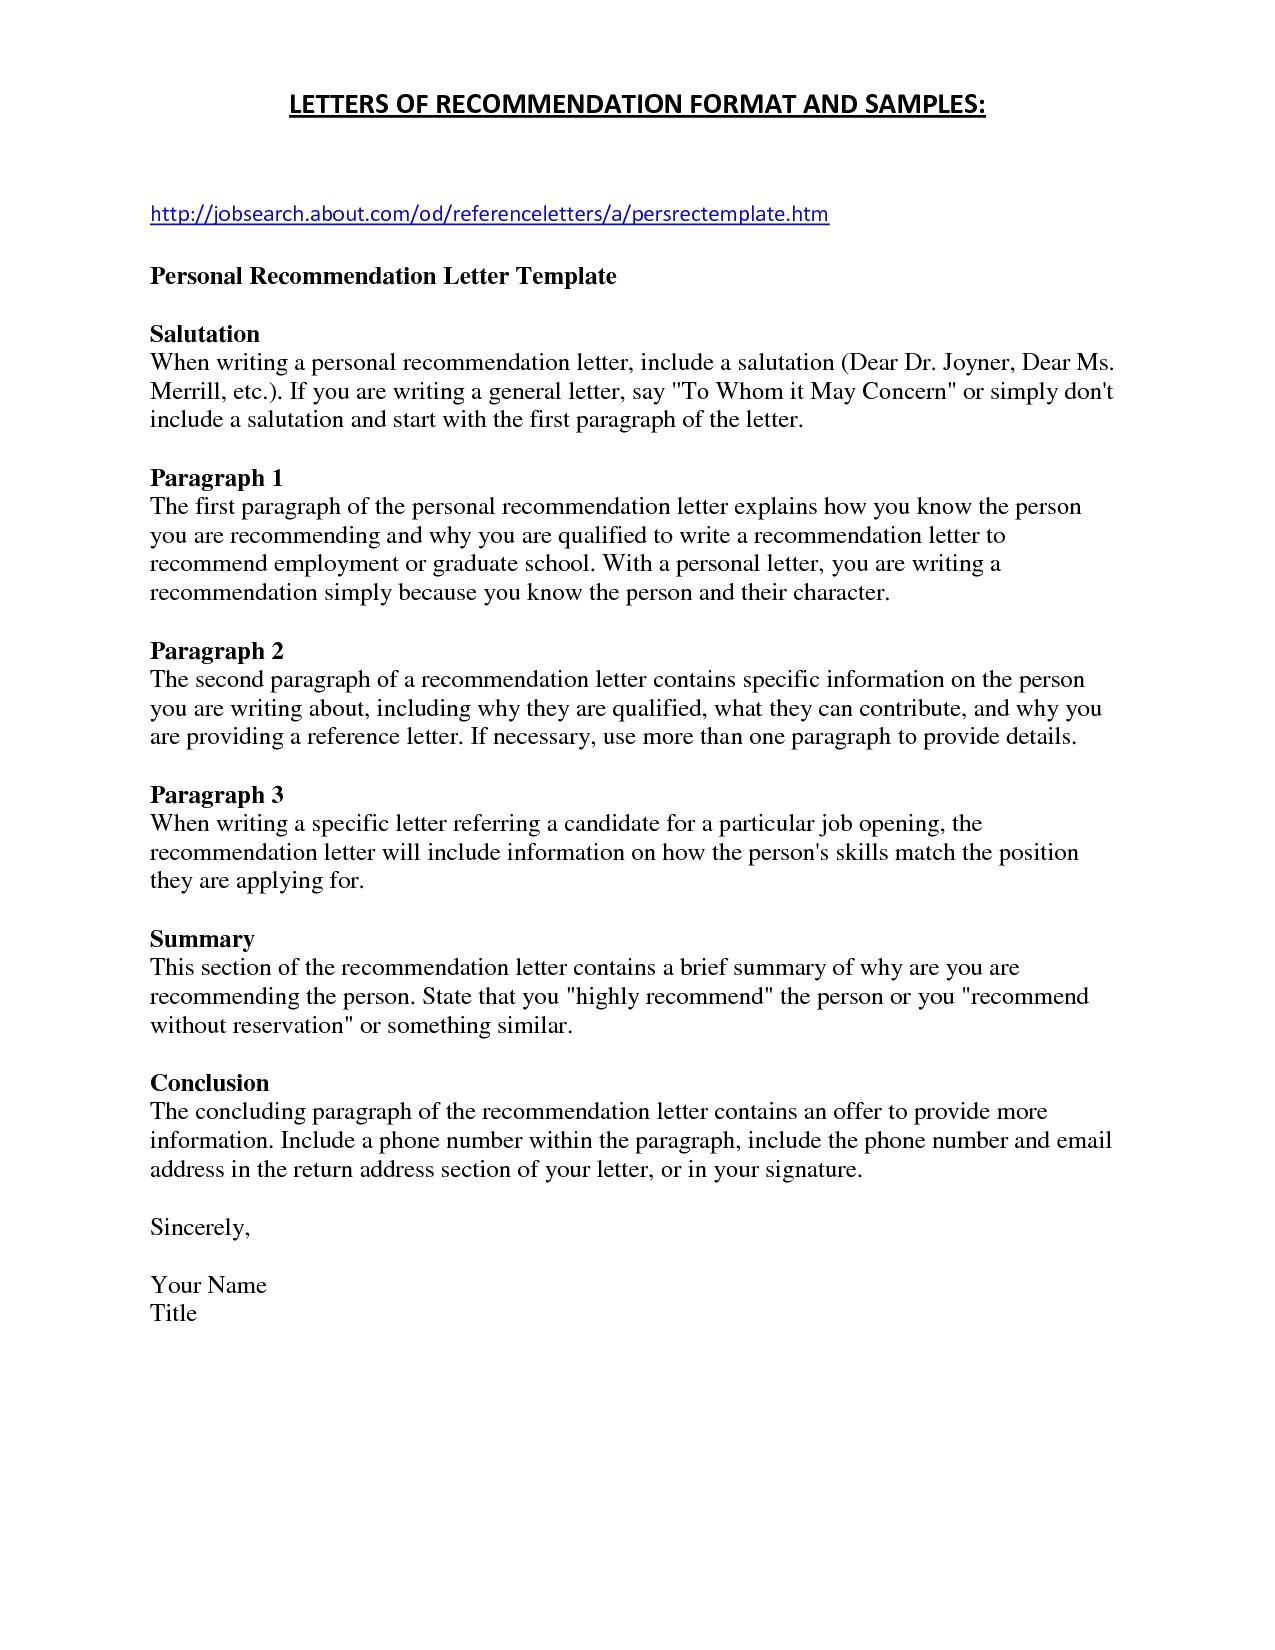 Resume Template for Graduate Students - 49 Concepts Sample Job Resume